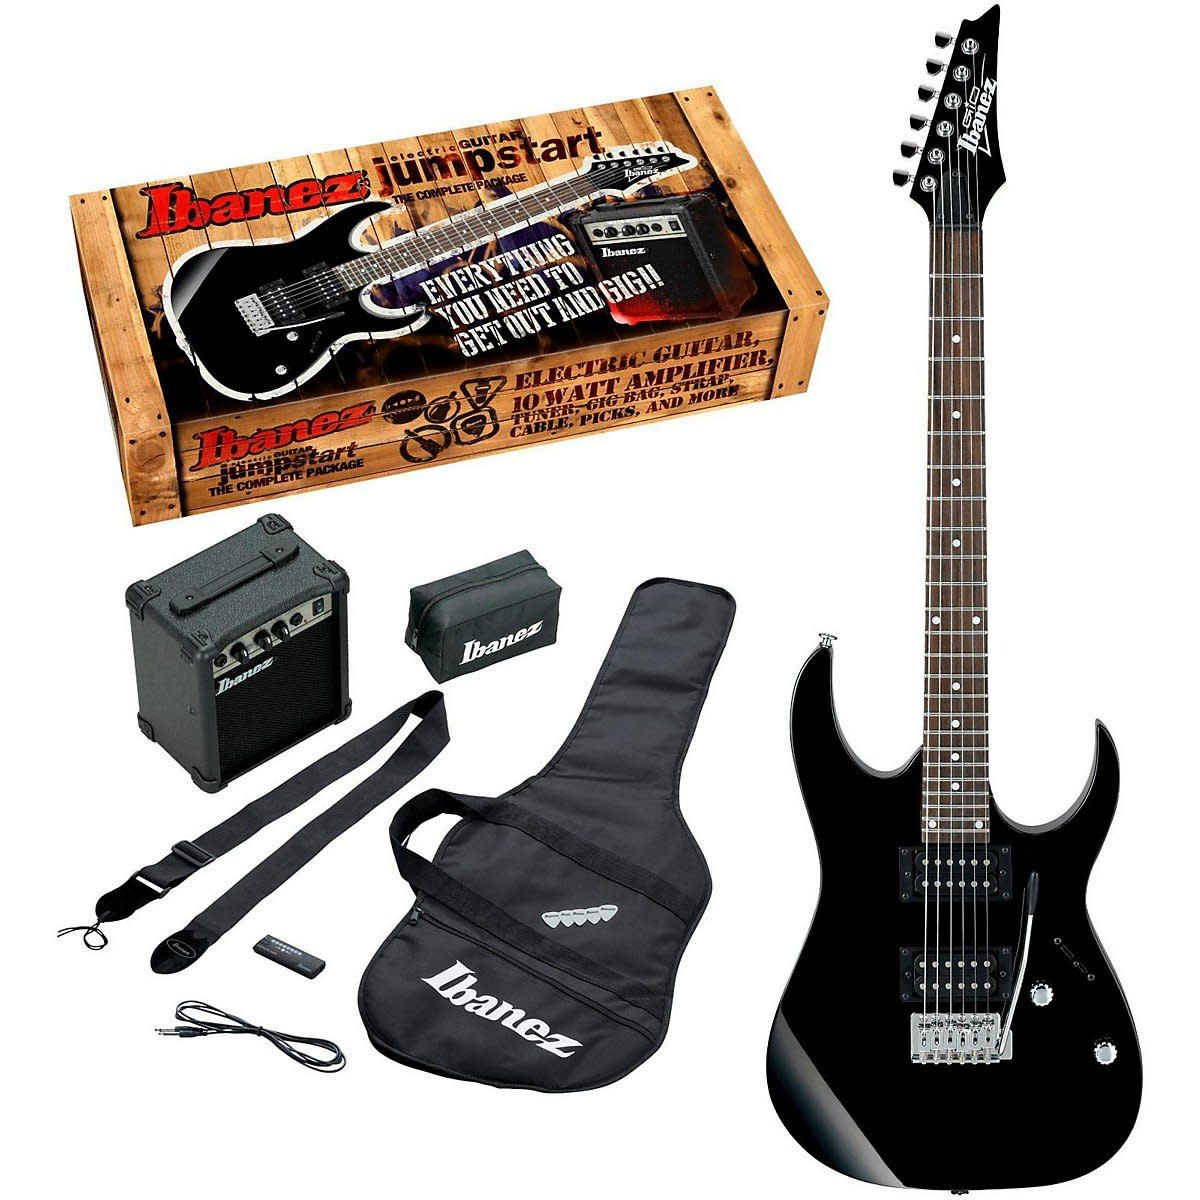 In addition to an awesome starter guitar, Ibanez gives you all the accessories you need to begin your playing career.